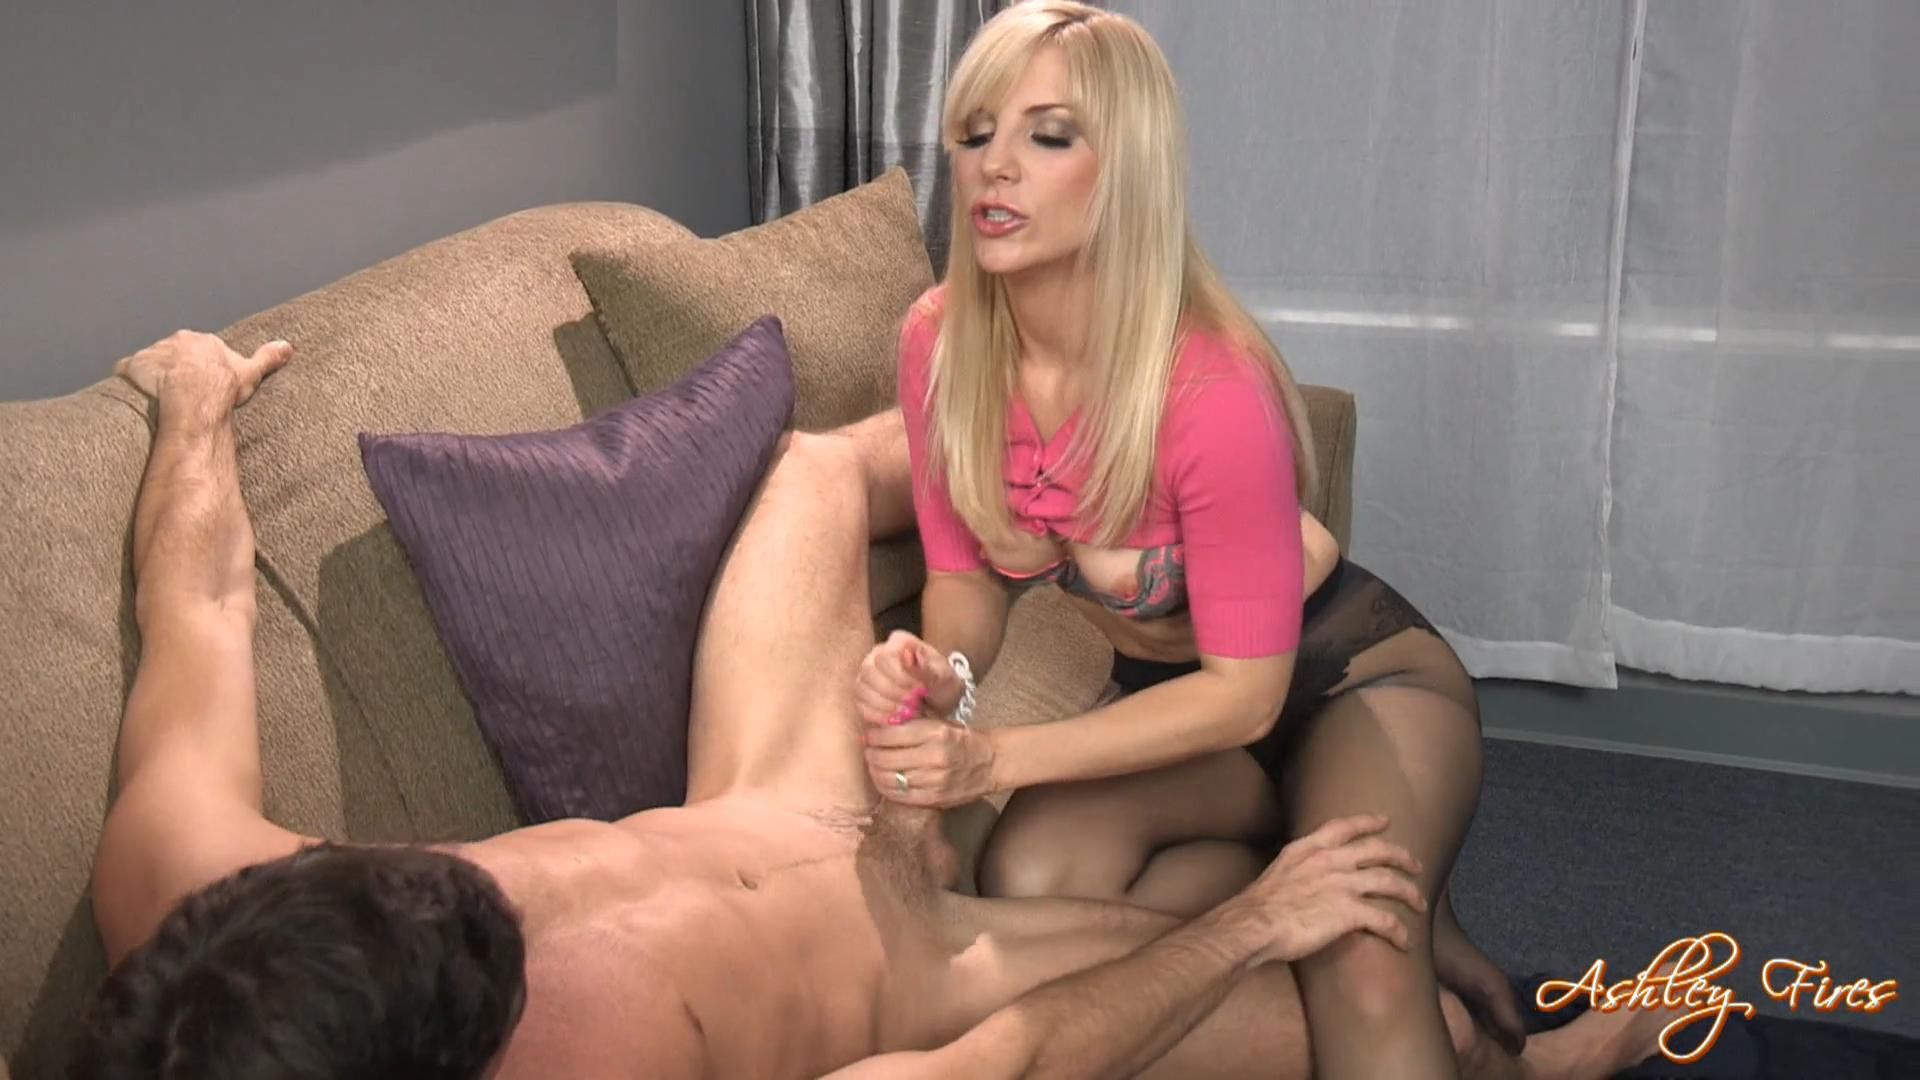 Amwf sunny lane interracial with asian guy 2